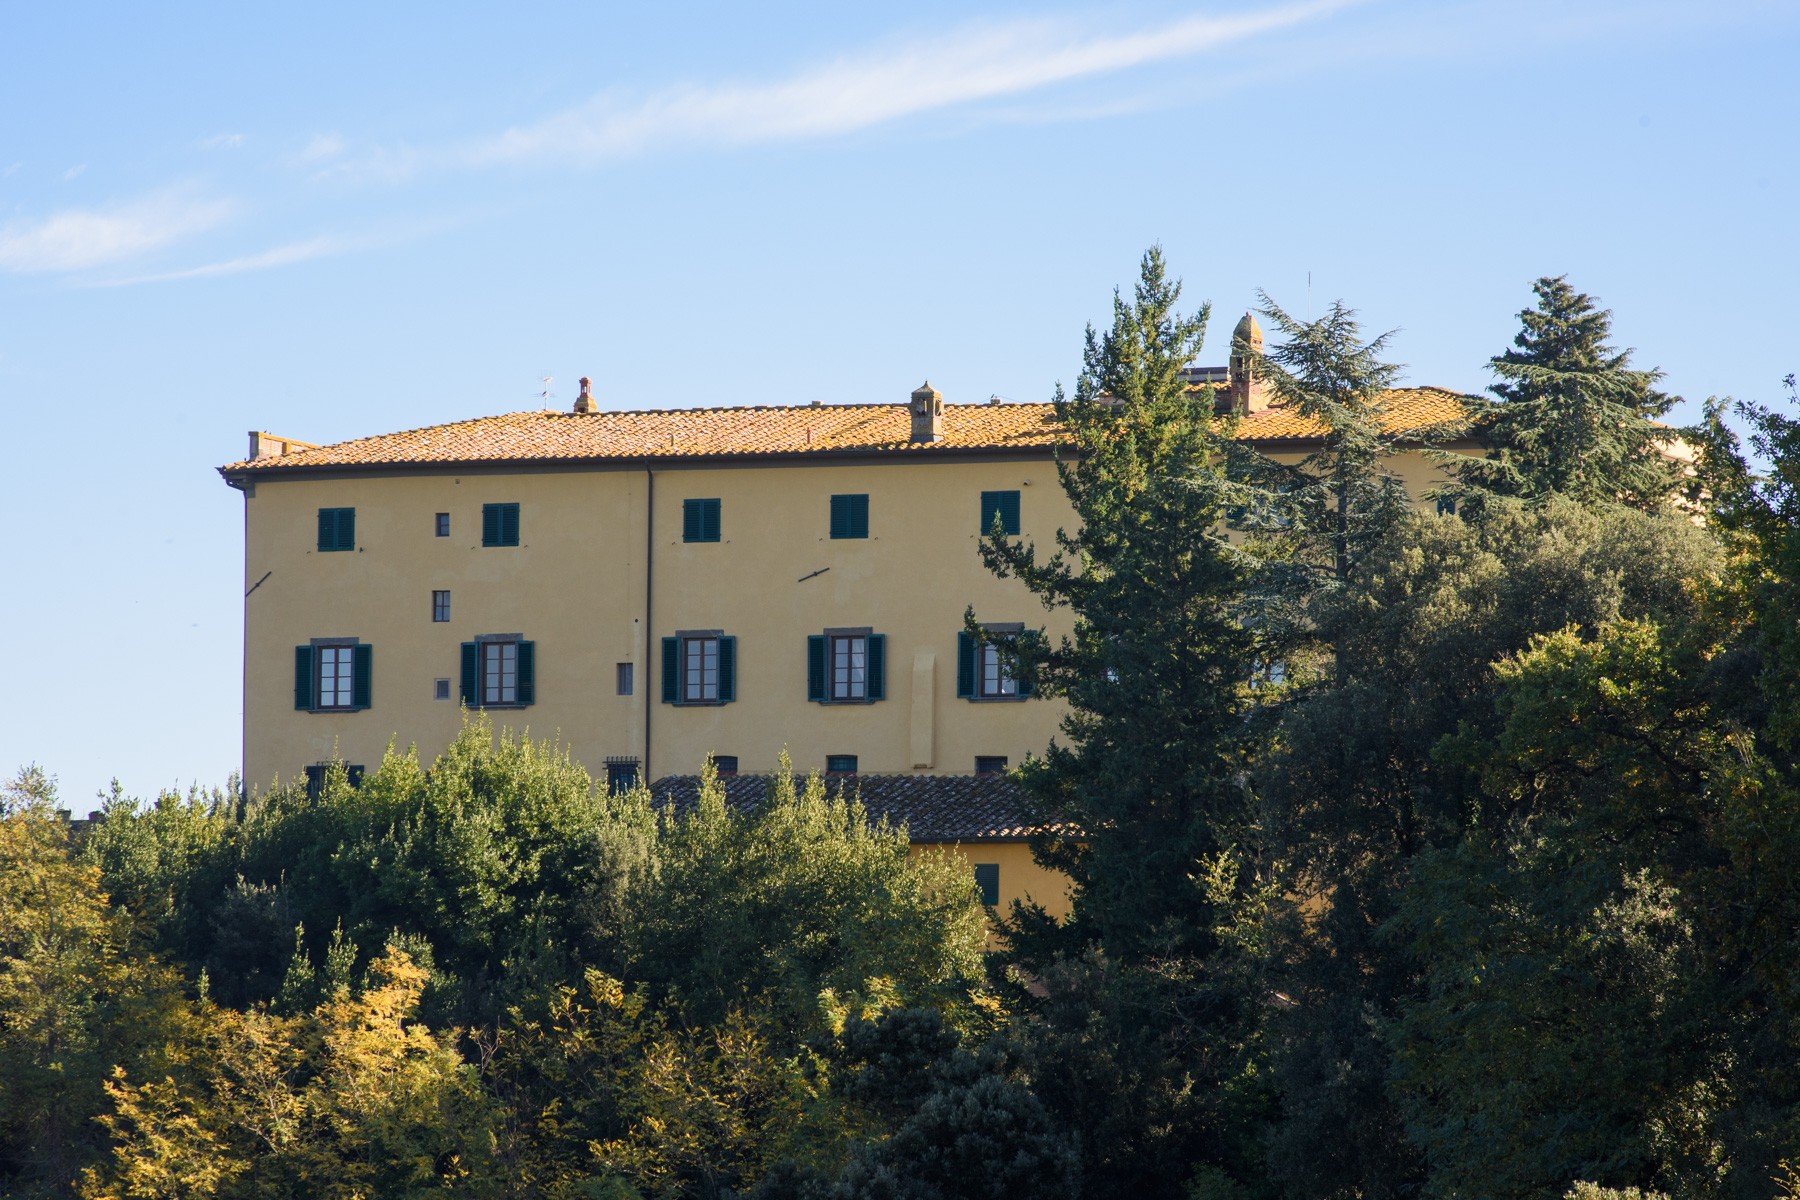 Historic estate in the heart of tuscany: villa strozzi in collegalli